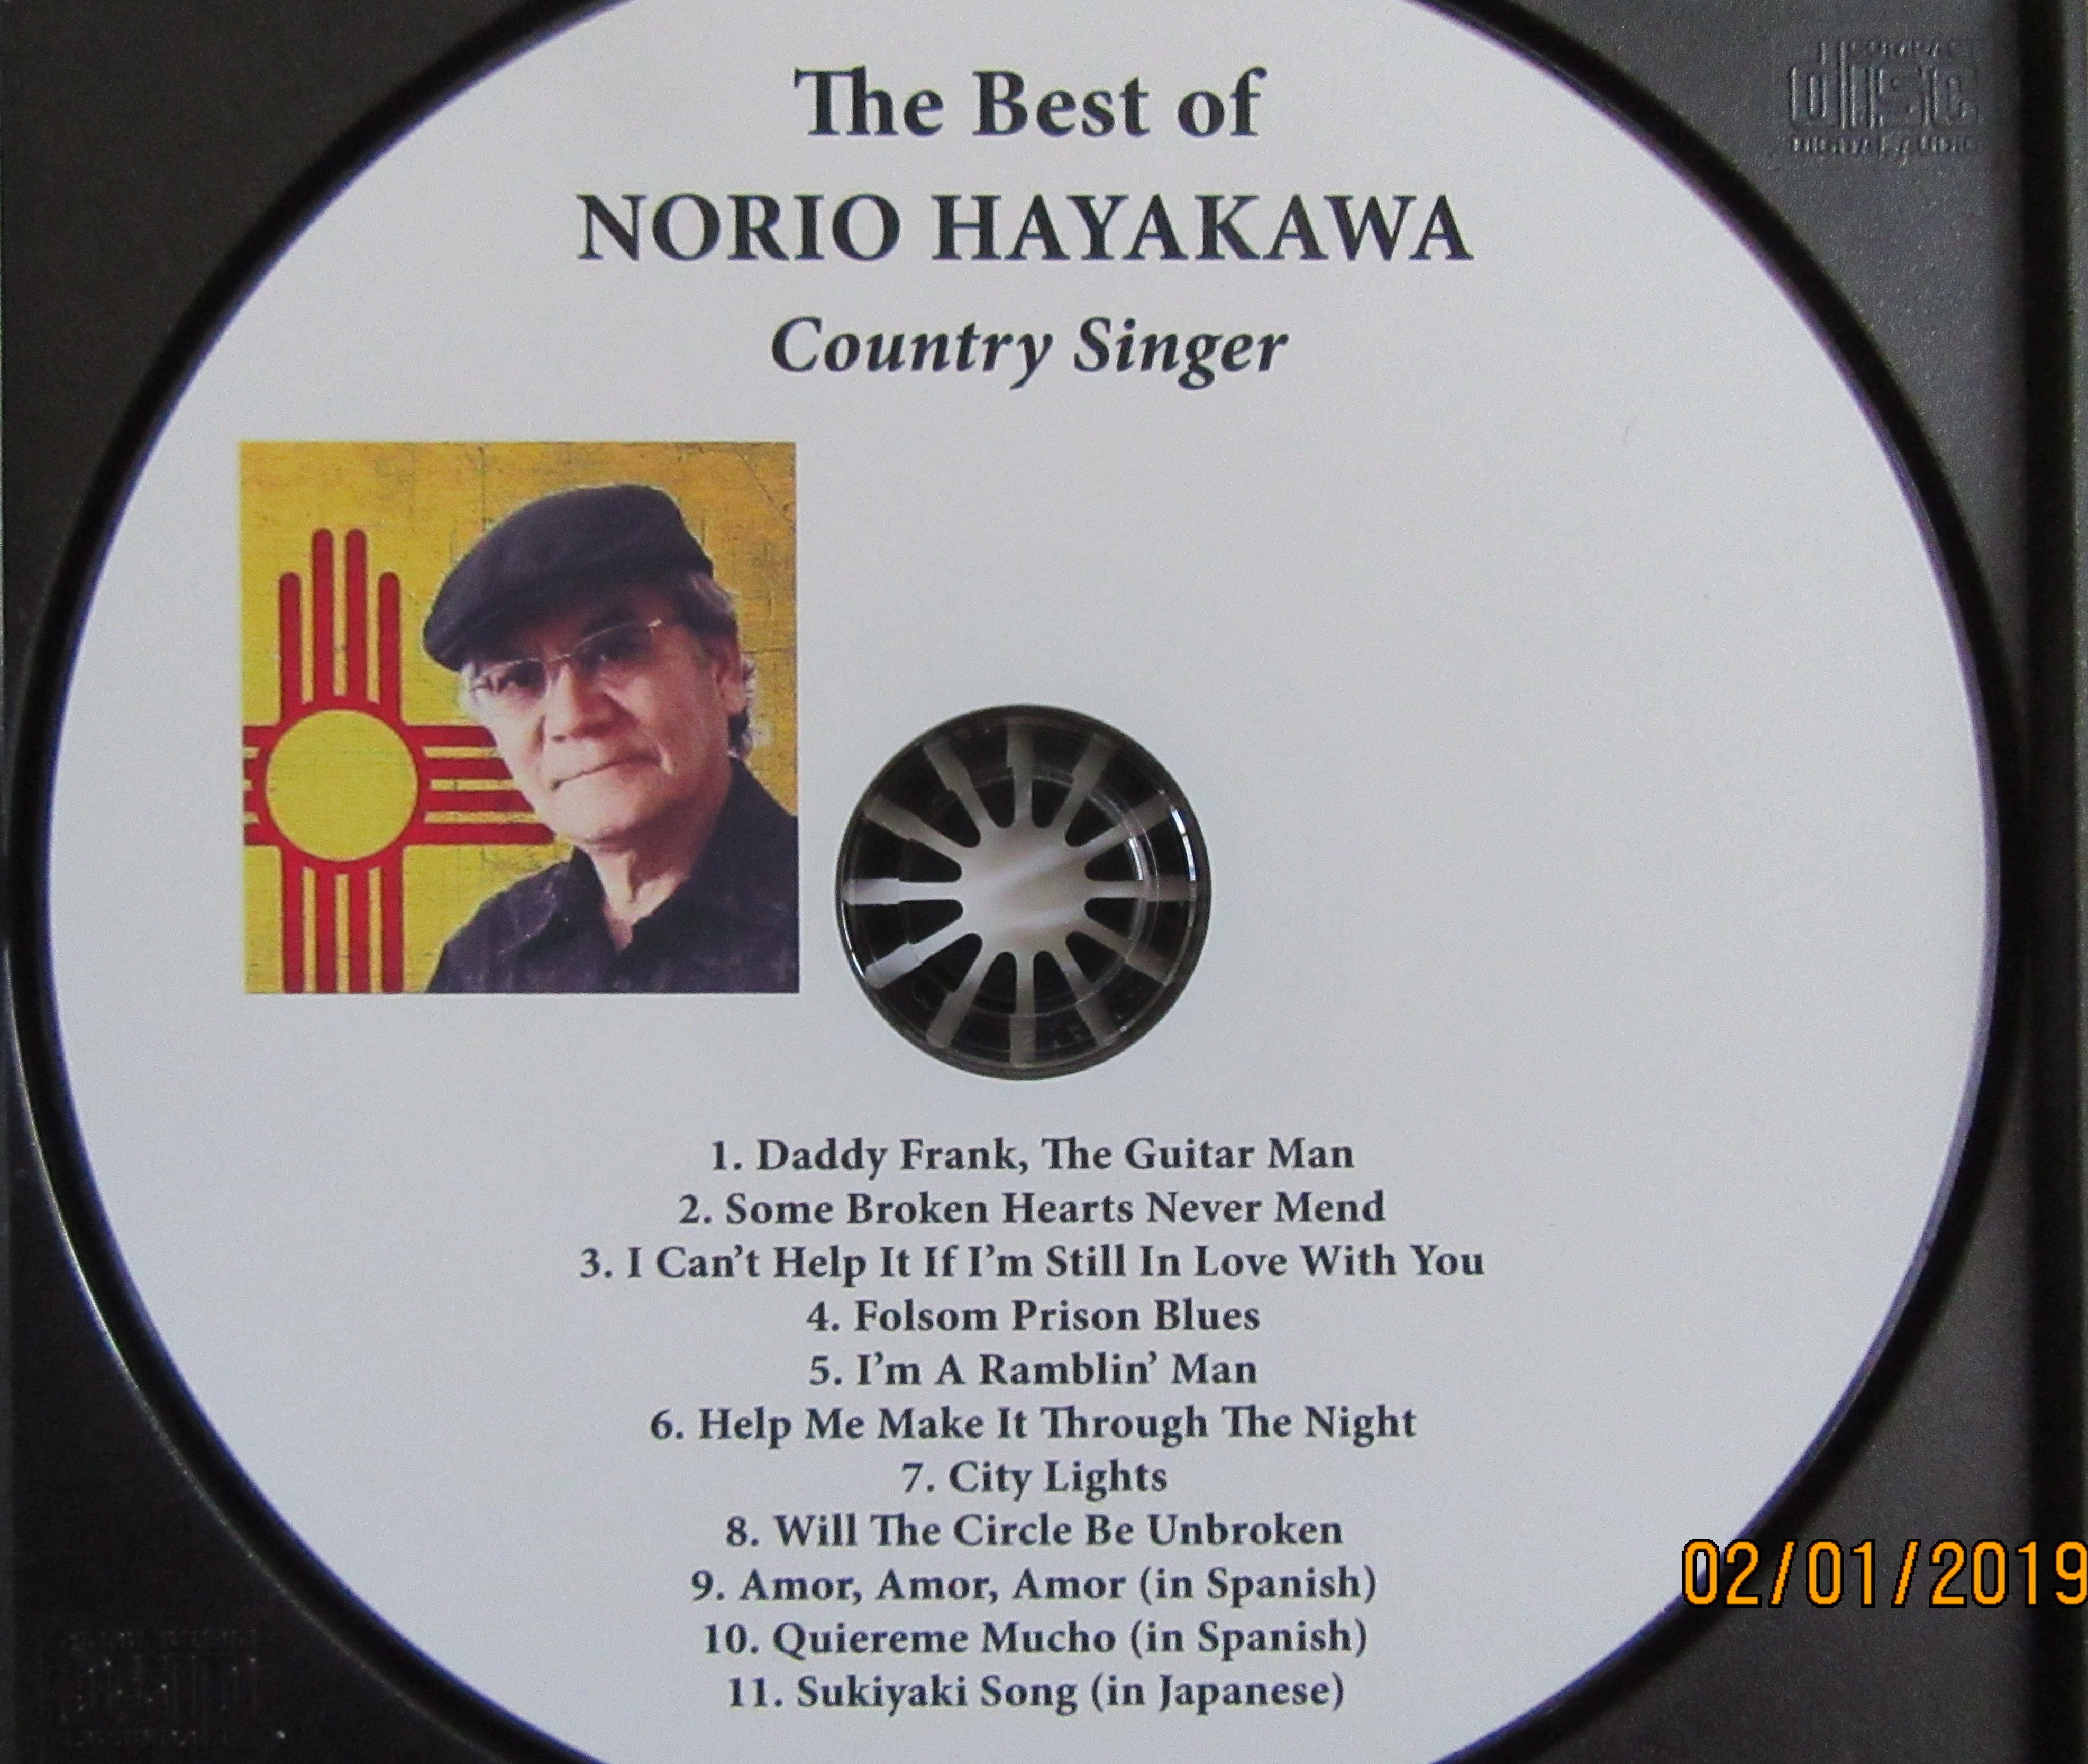 Selections from new CD Album by Norio Hayakawa, country